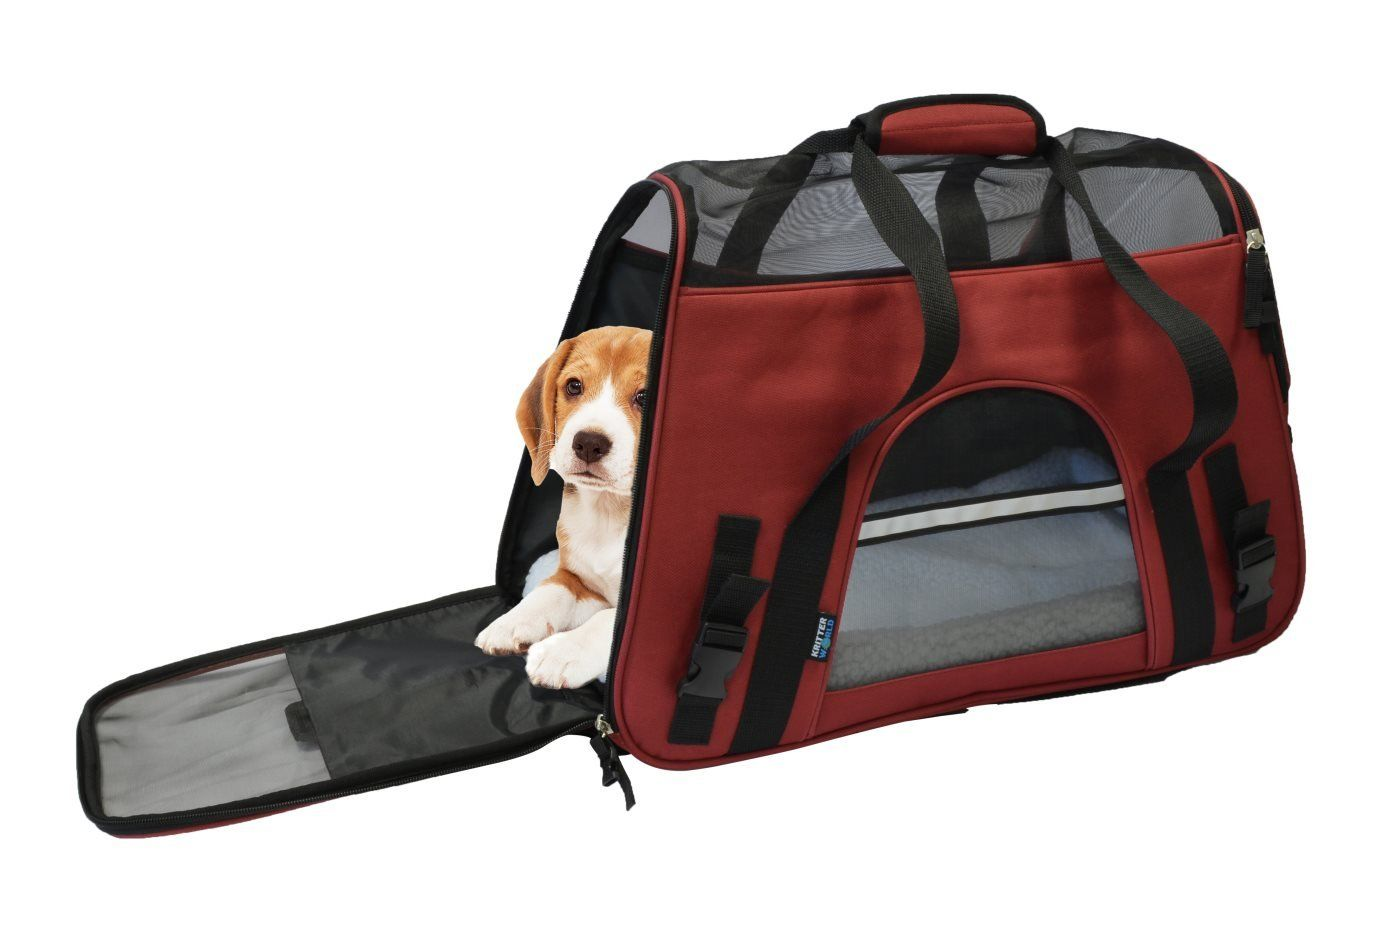 2d435d01c7a4 KritterWorld Soft Side Pet Carrier Travel Bag for Small Dogs and ...